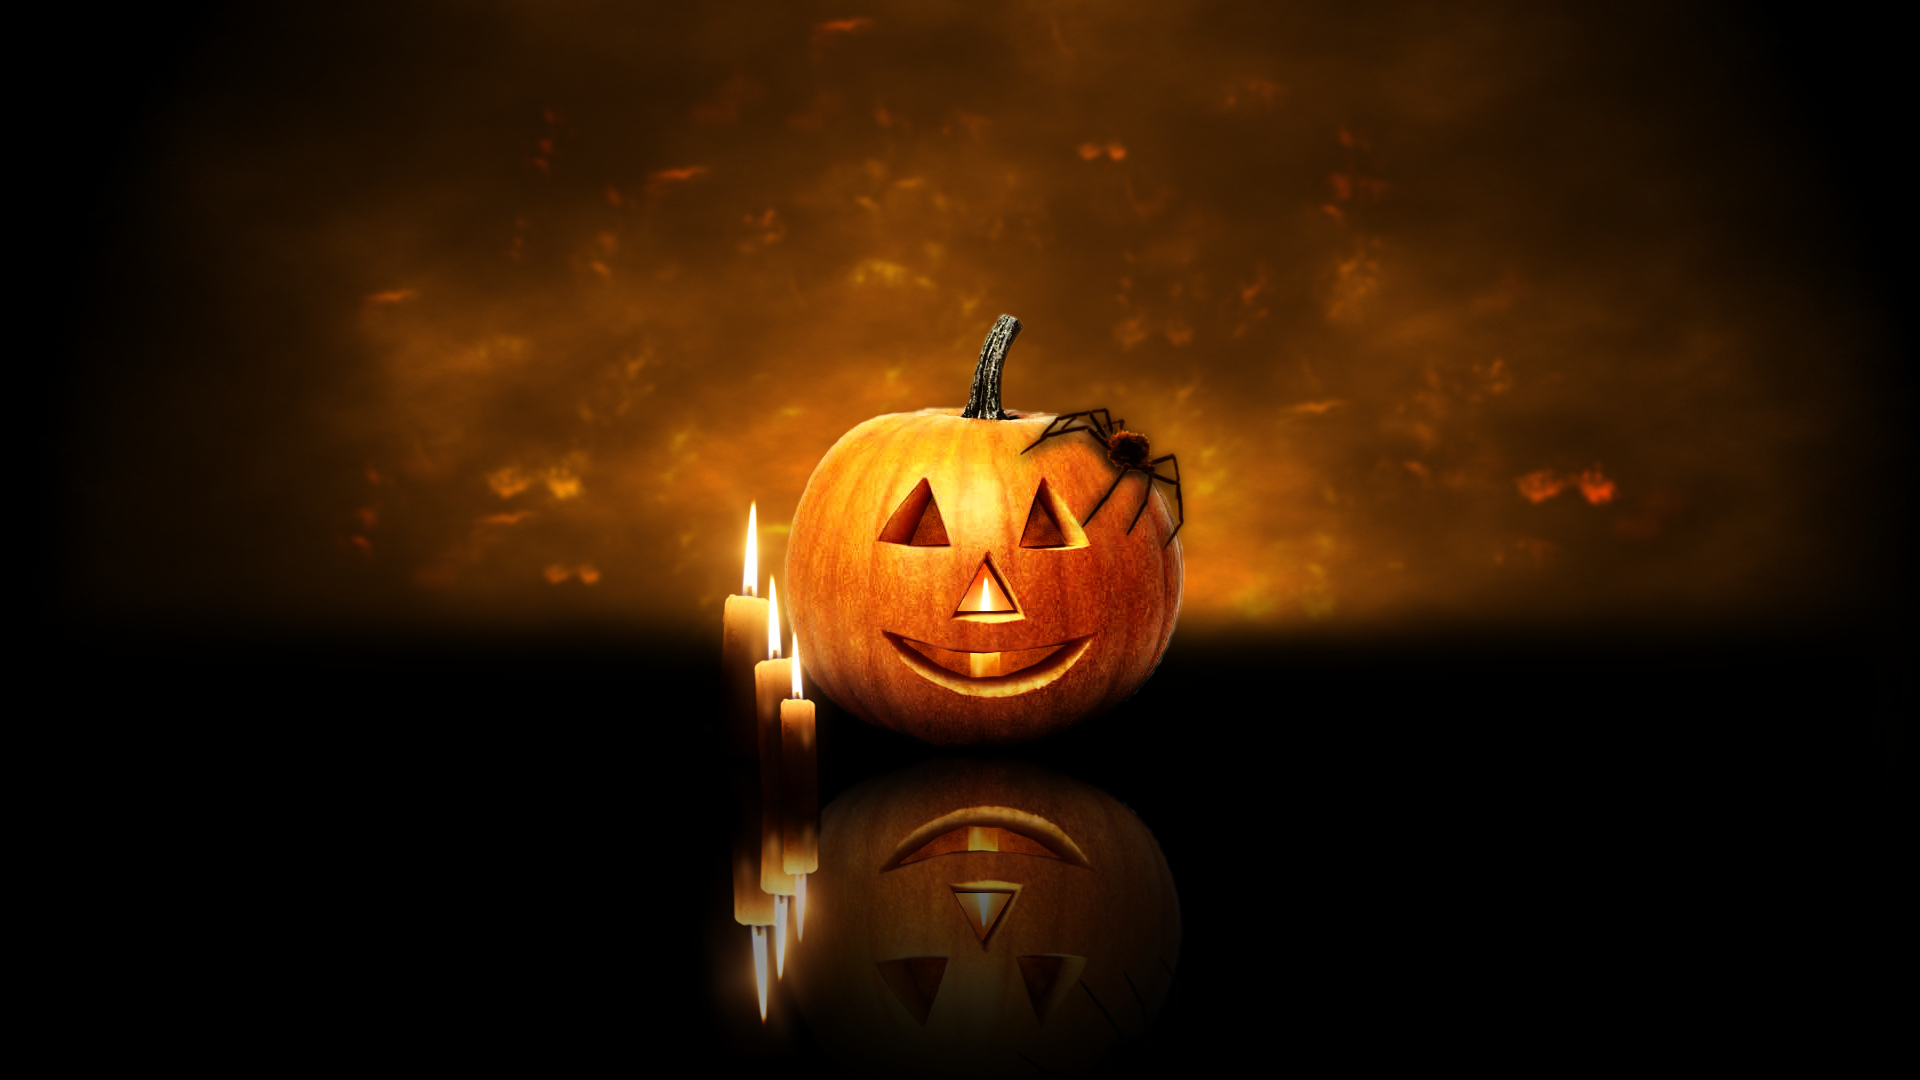 happy halloween wallpapers - photo #14